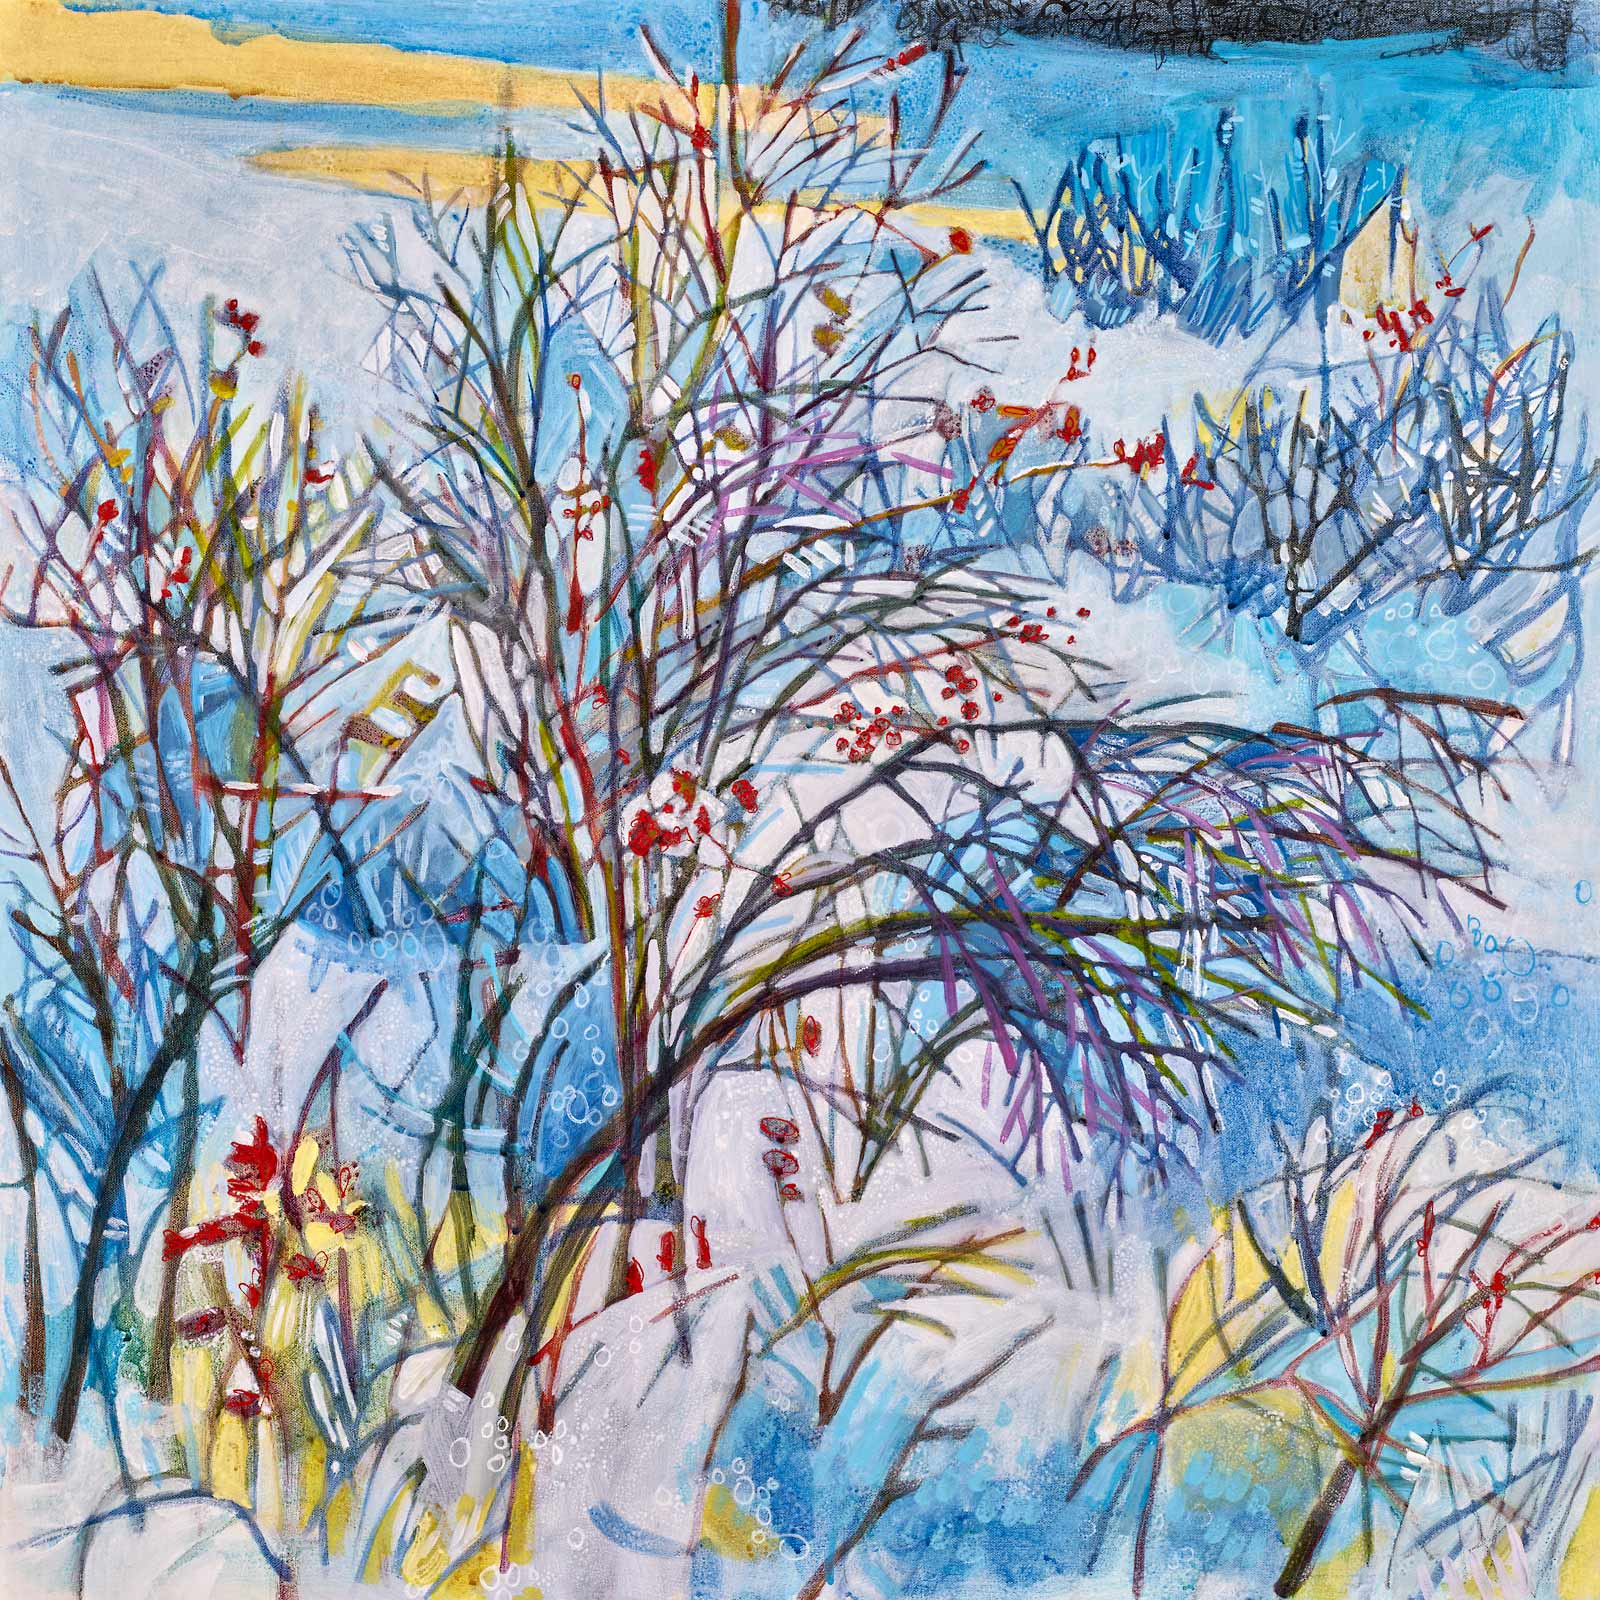 Winter Shrubs, 30x30. Contemporary landscape painting by Lance Whitner hanging in Pine Moon Fine Art.